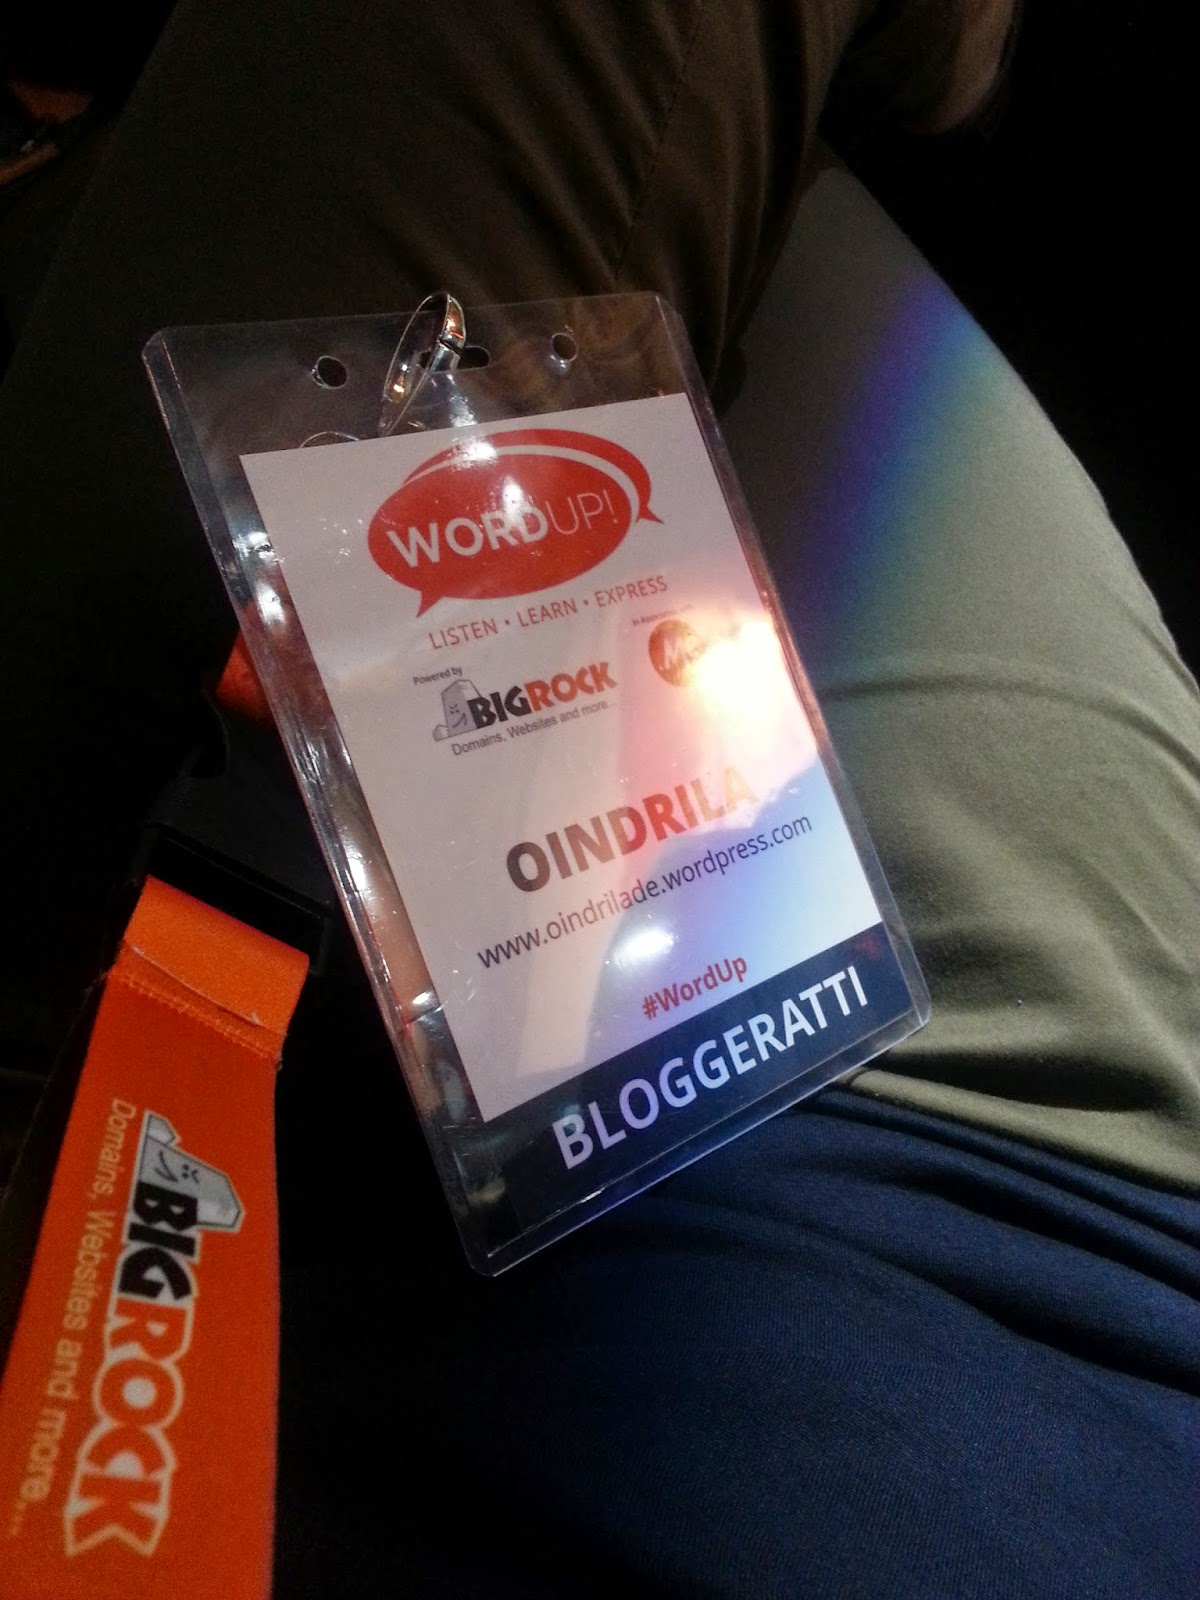 My badge at the Indiblogger Wordup Bloggers' Meet